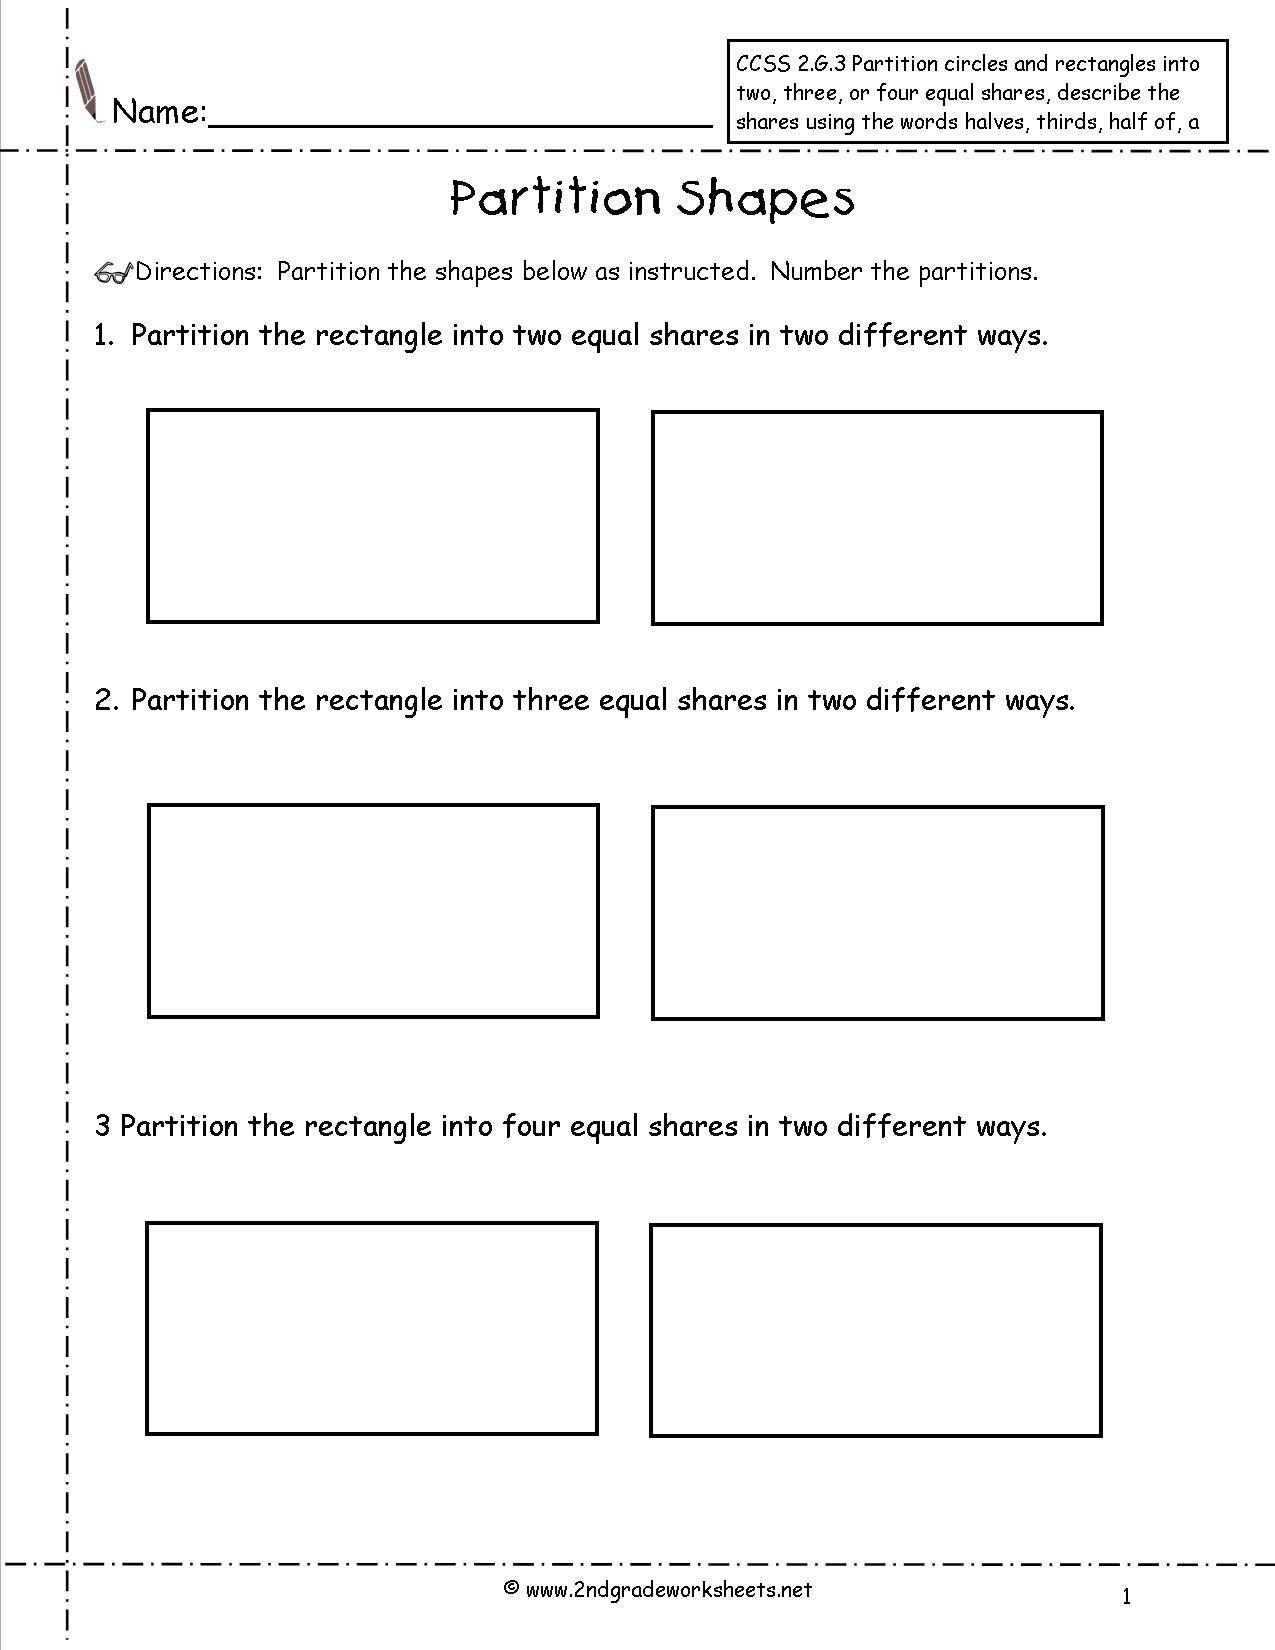 Shapes Worksheets 2nd Grade Ccss 2 G 3 Worksheets Partition Shapes